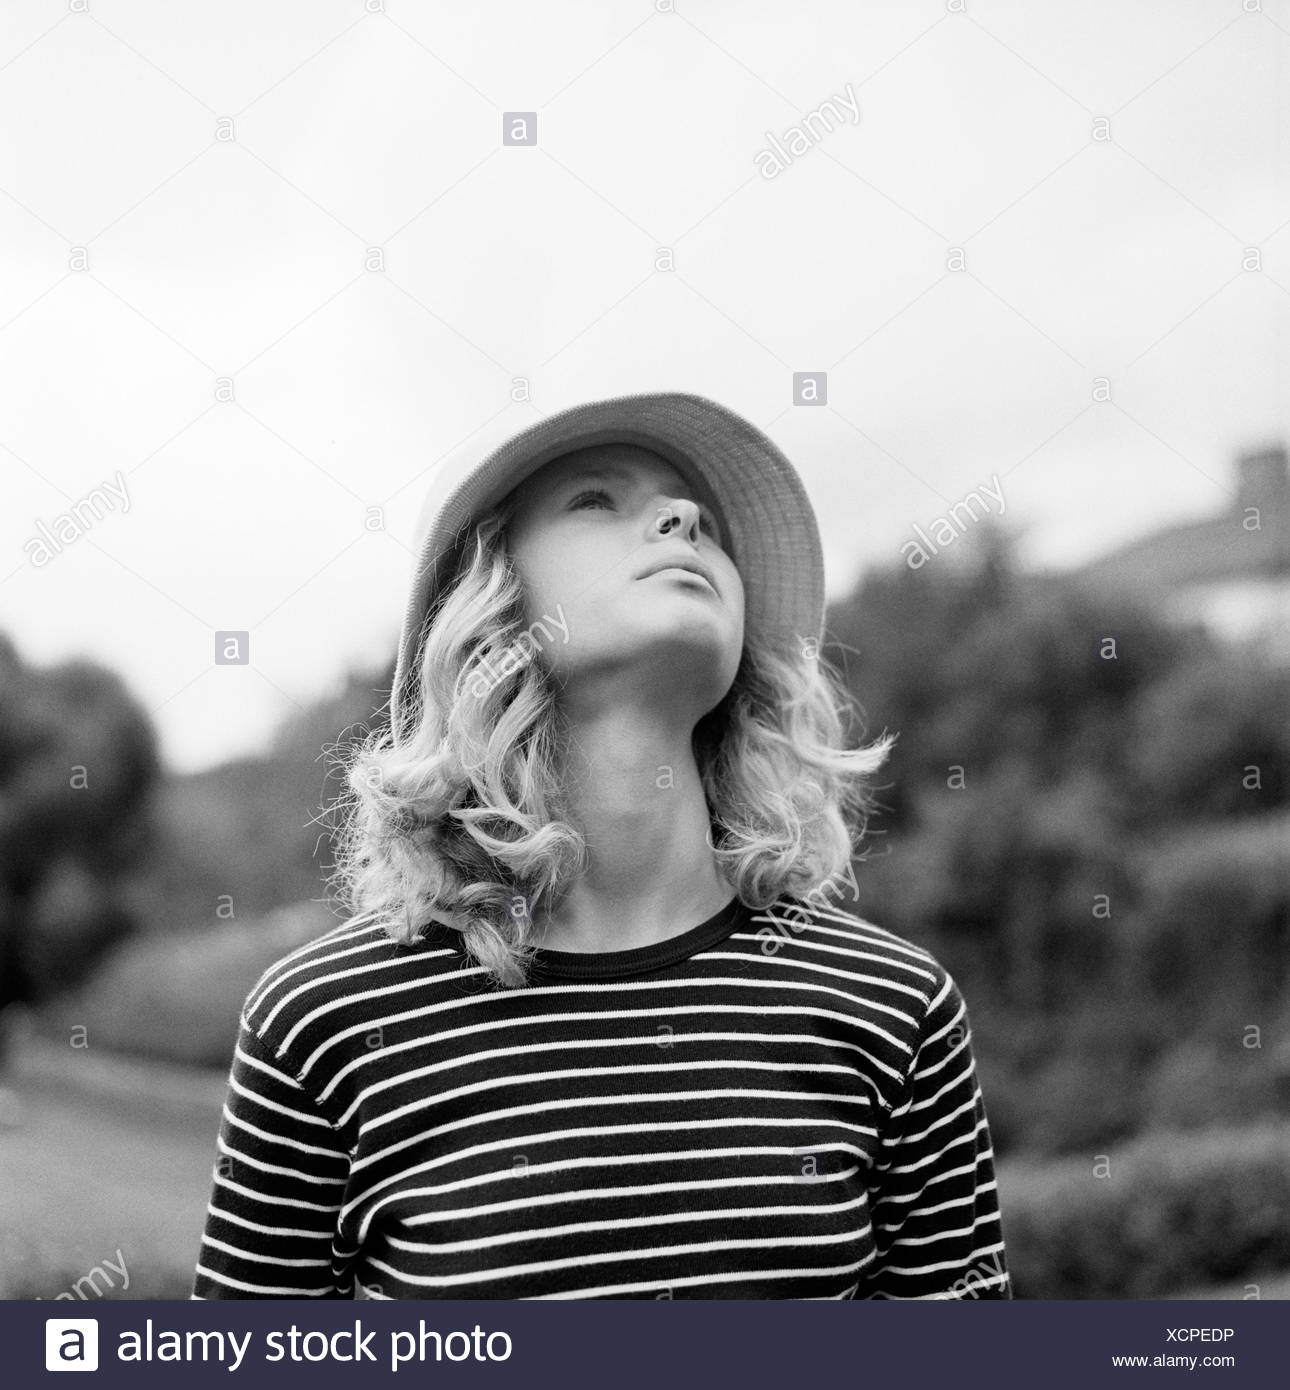 A Woman Looking Up In The Sky Stock Photo Alamy